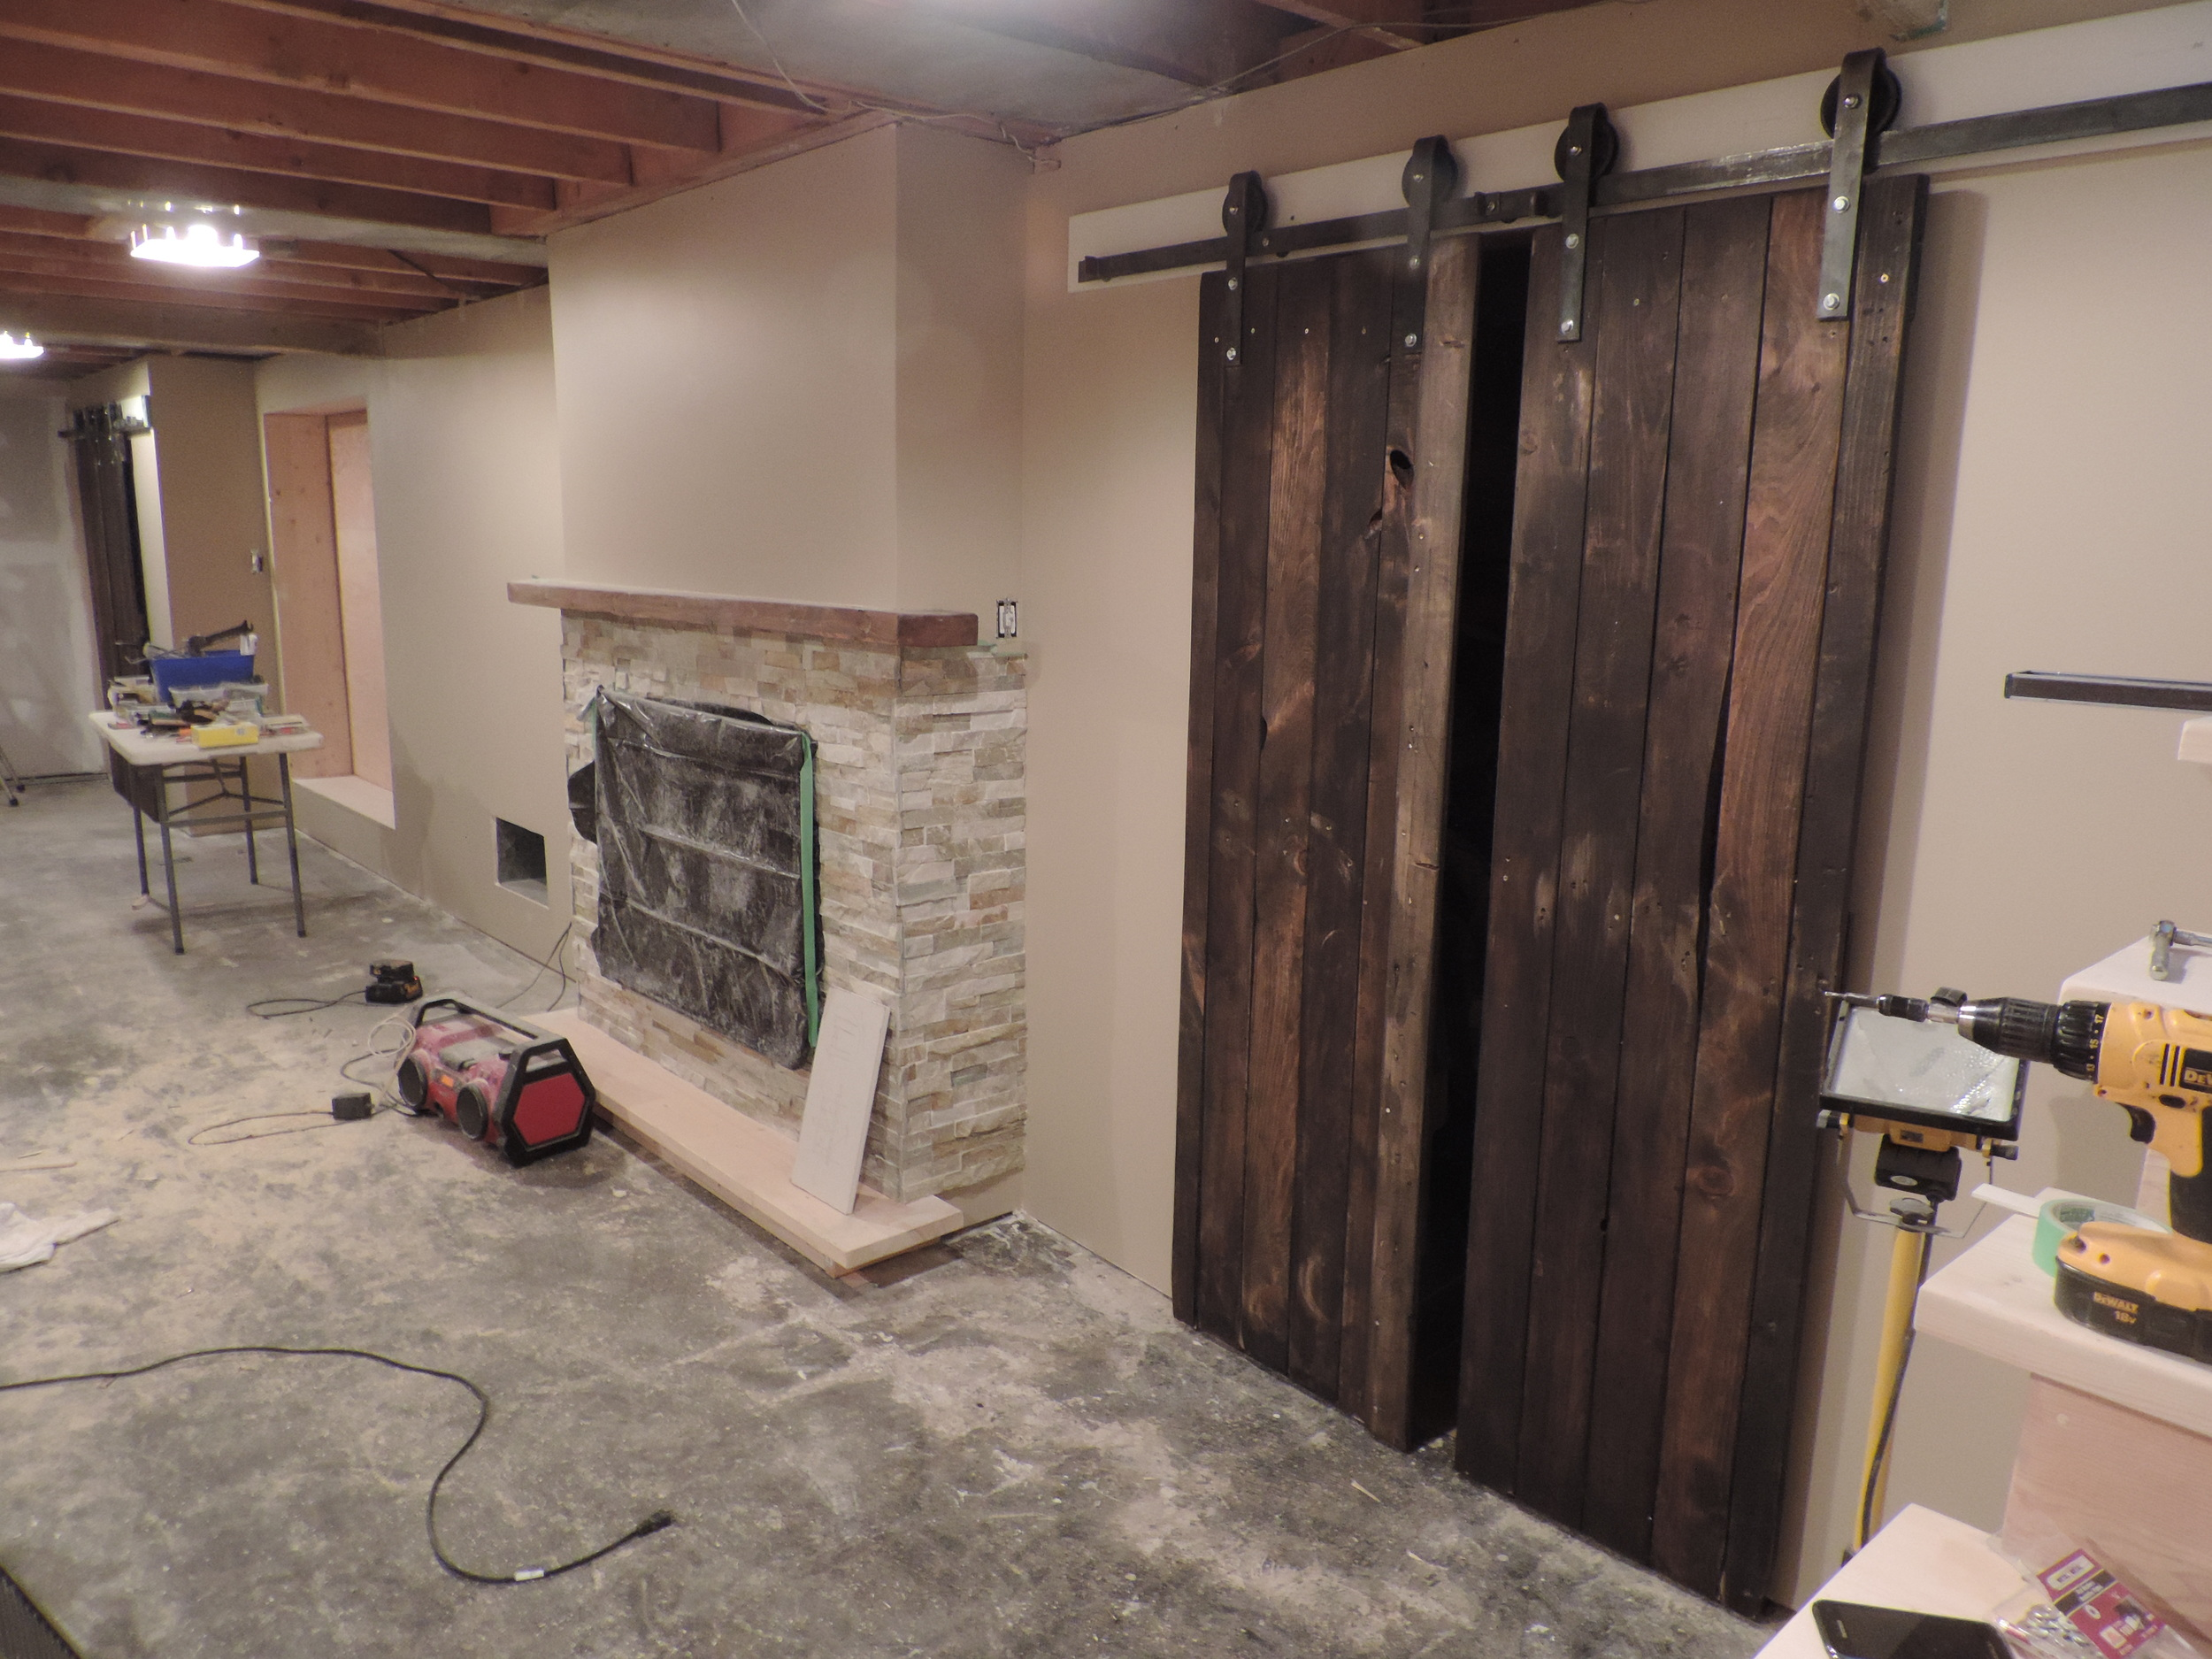 Michael from Sudbury made the doors himself using knotty pine, and hang them on the biparting barn door hardware for a wow factor in his basement. Great job Michael.